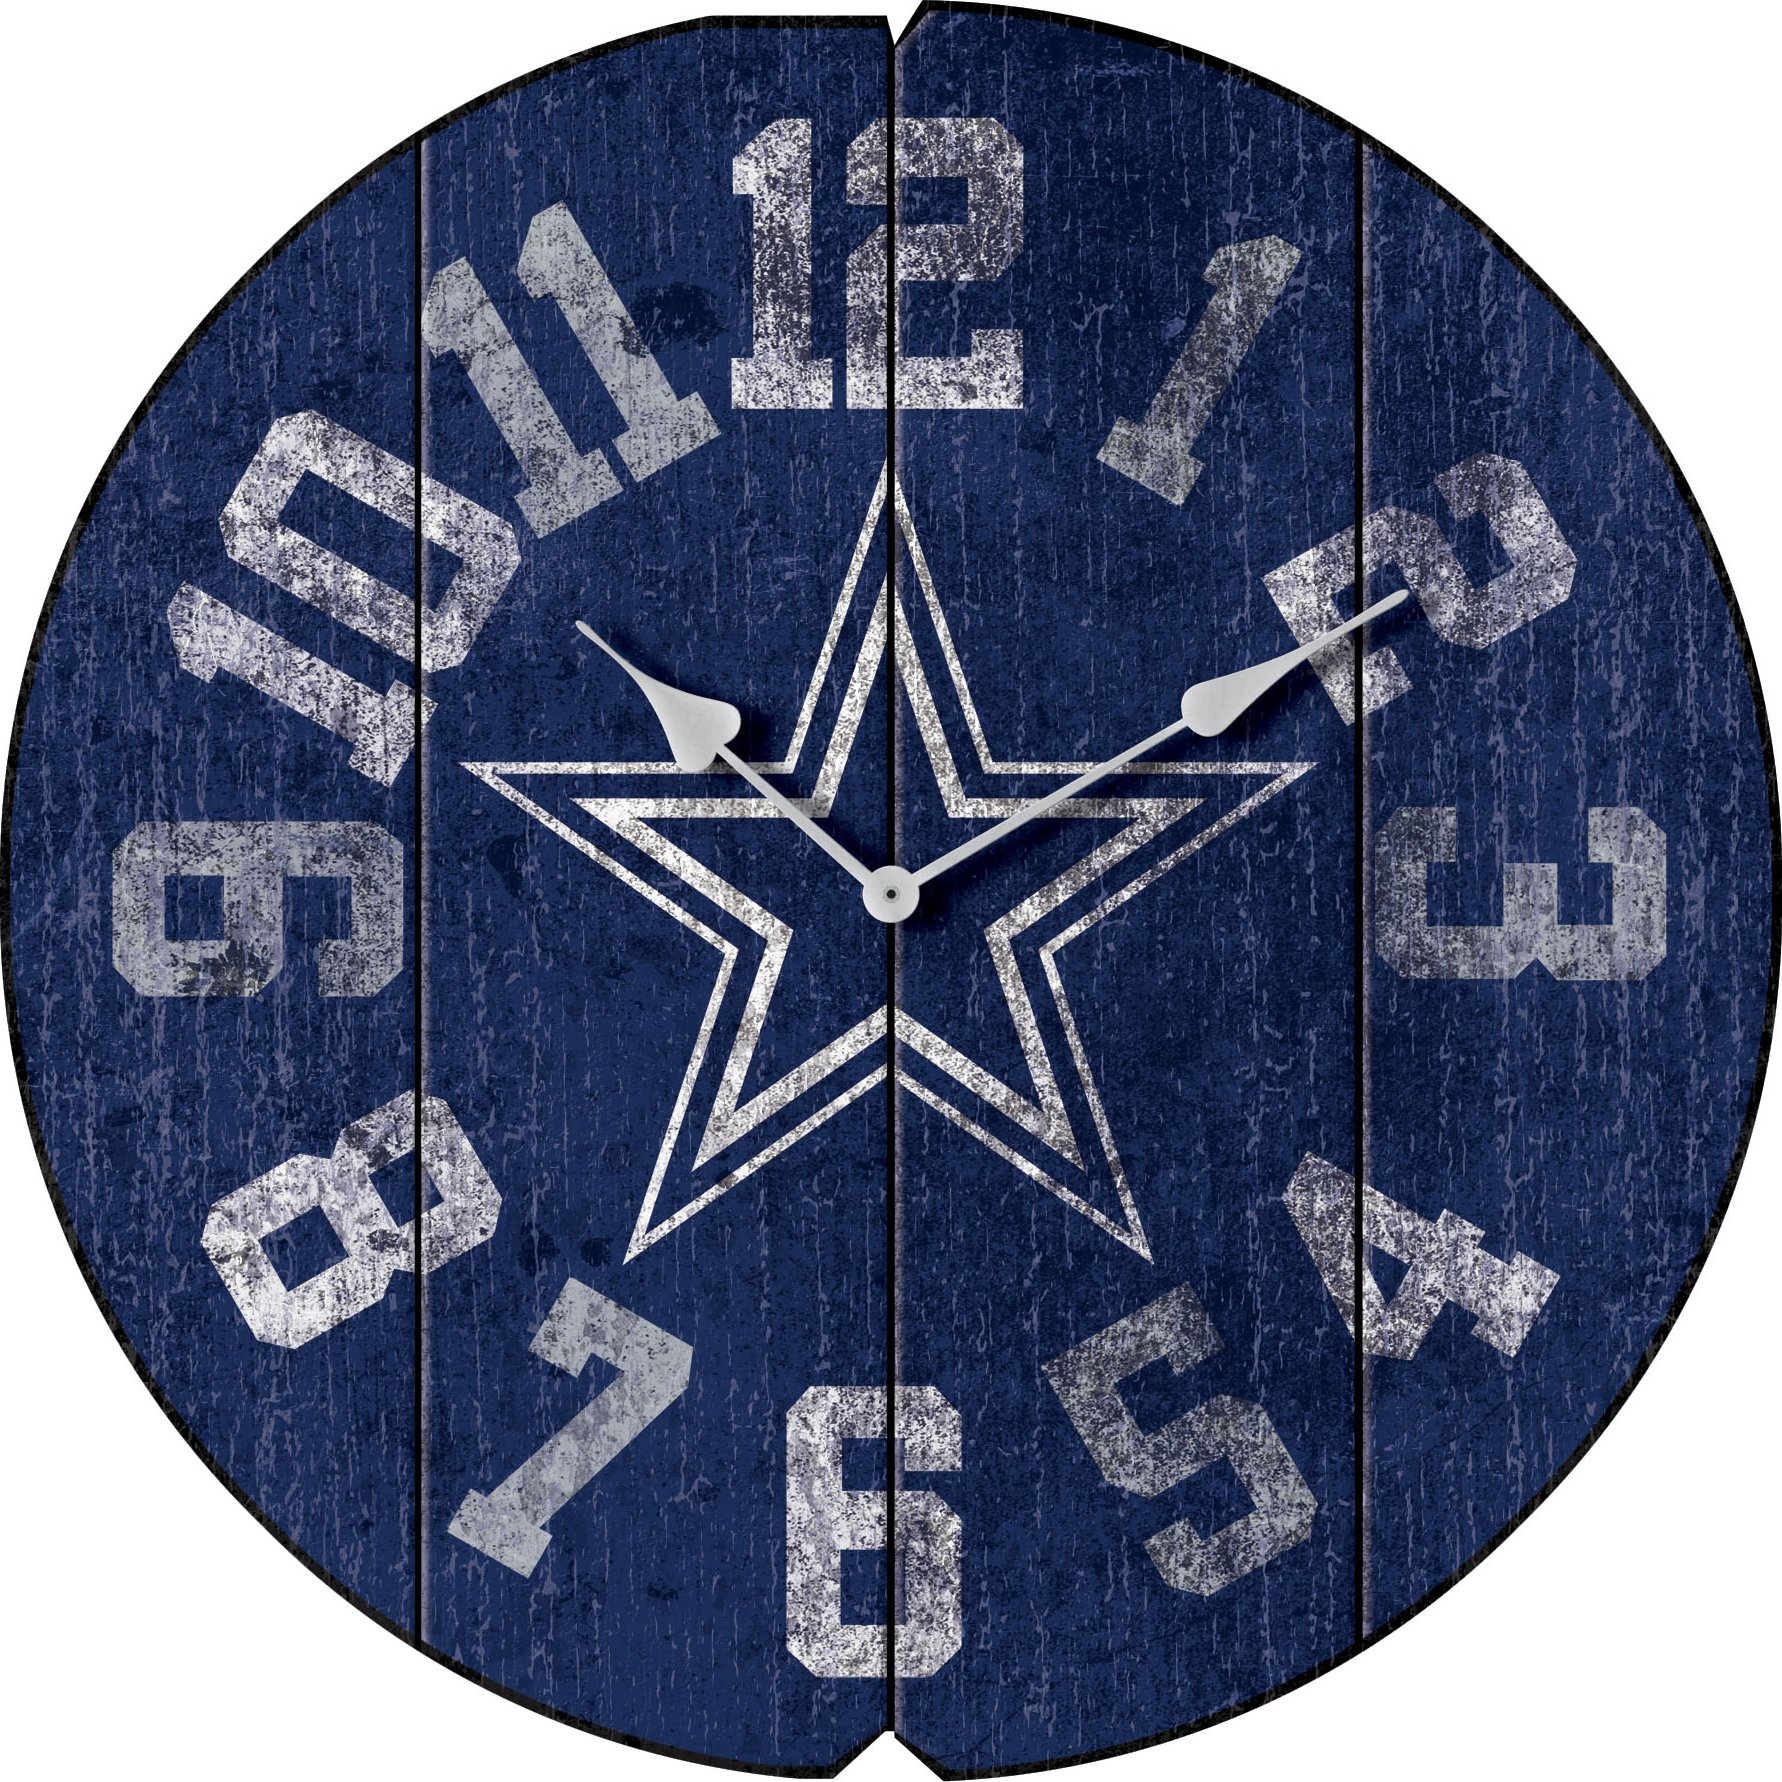 Imperial Officially Licensed NFL Merchandise: Vintage Round Clock, Dallas Cowboys by Imperial